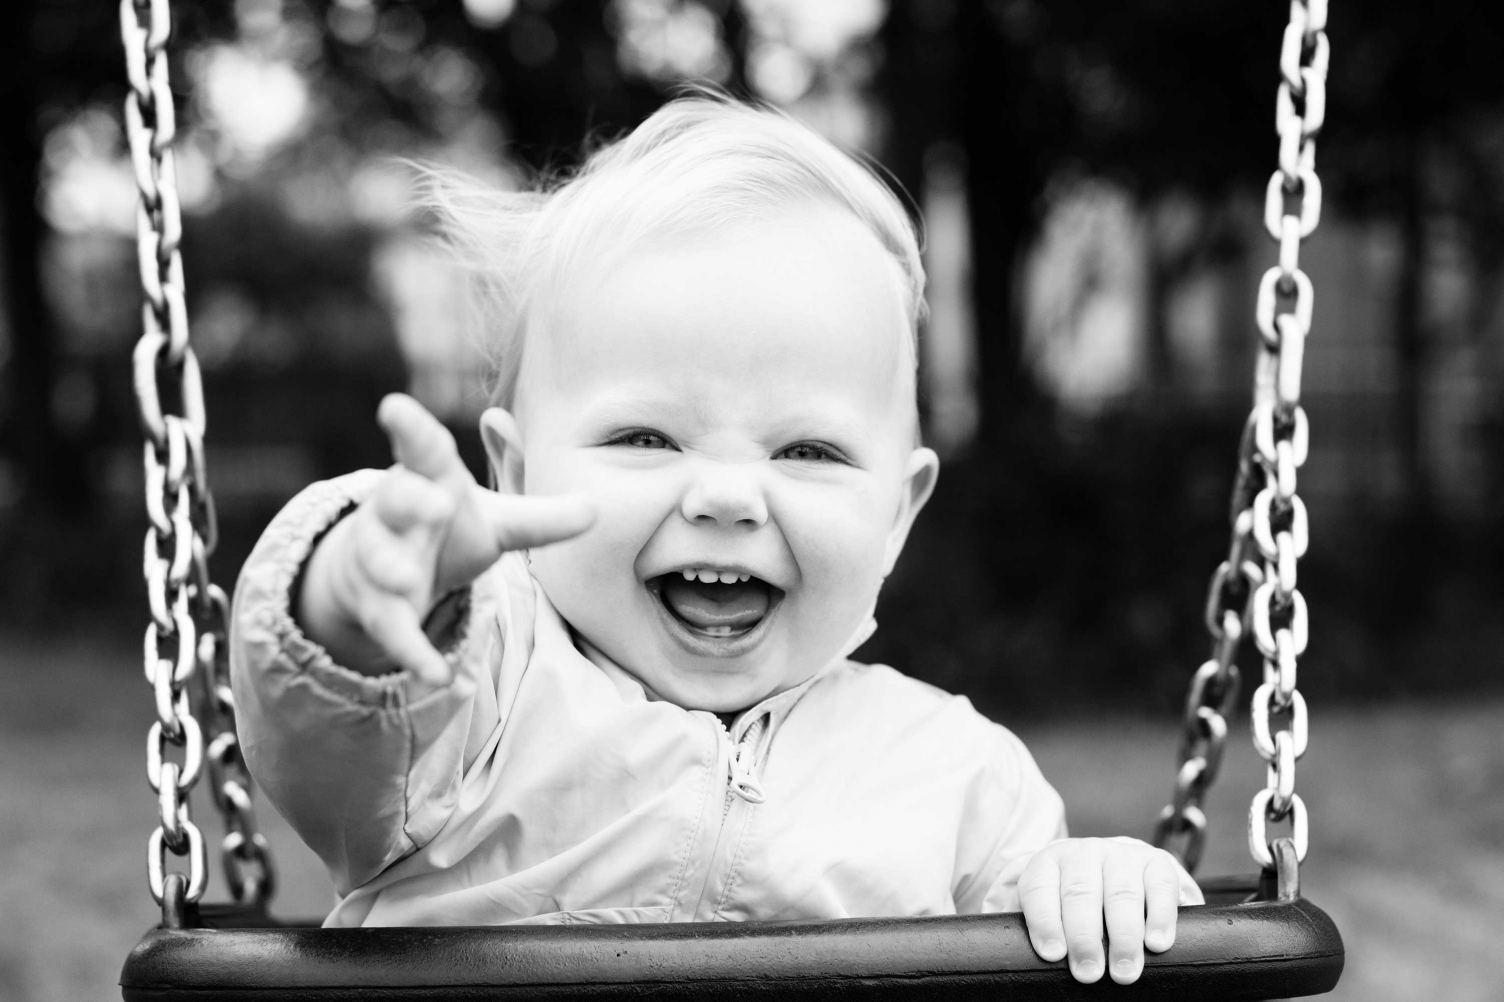 Baby photography: this baby sits in a swing, smiling and pointing at the camera.